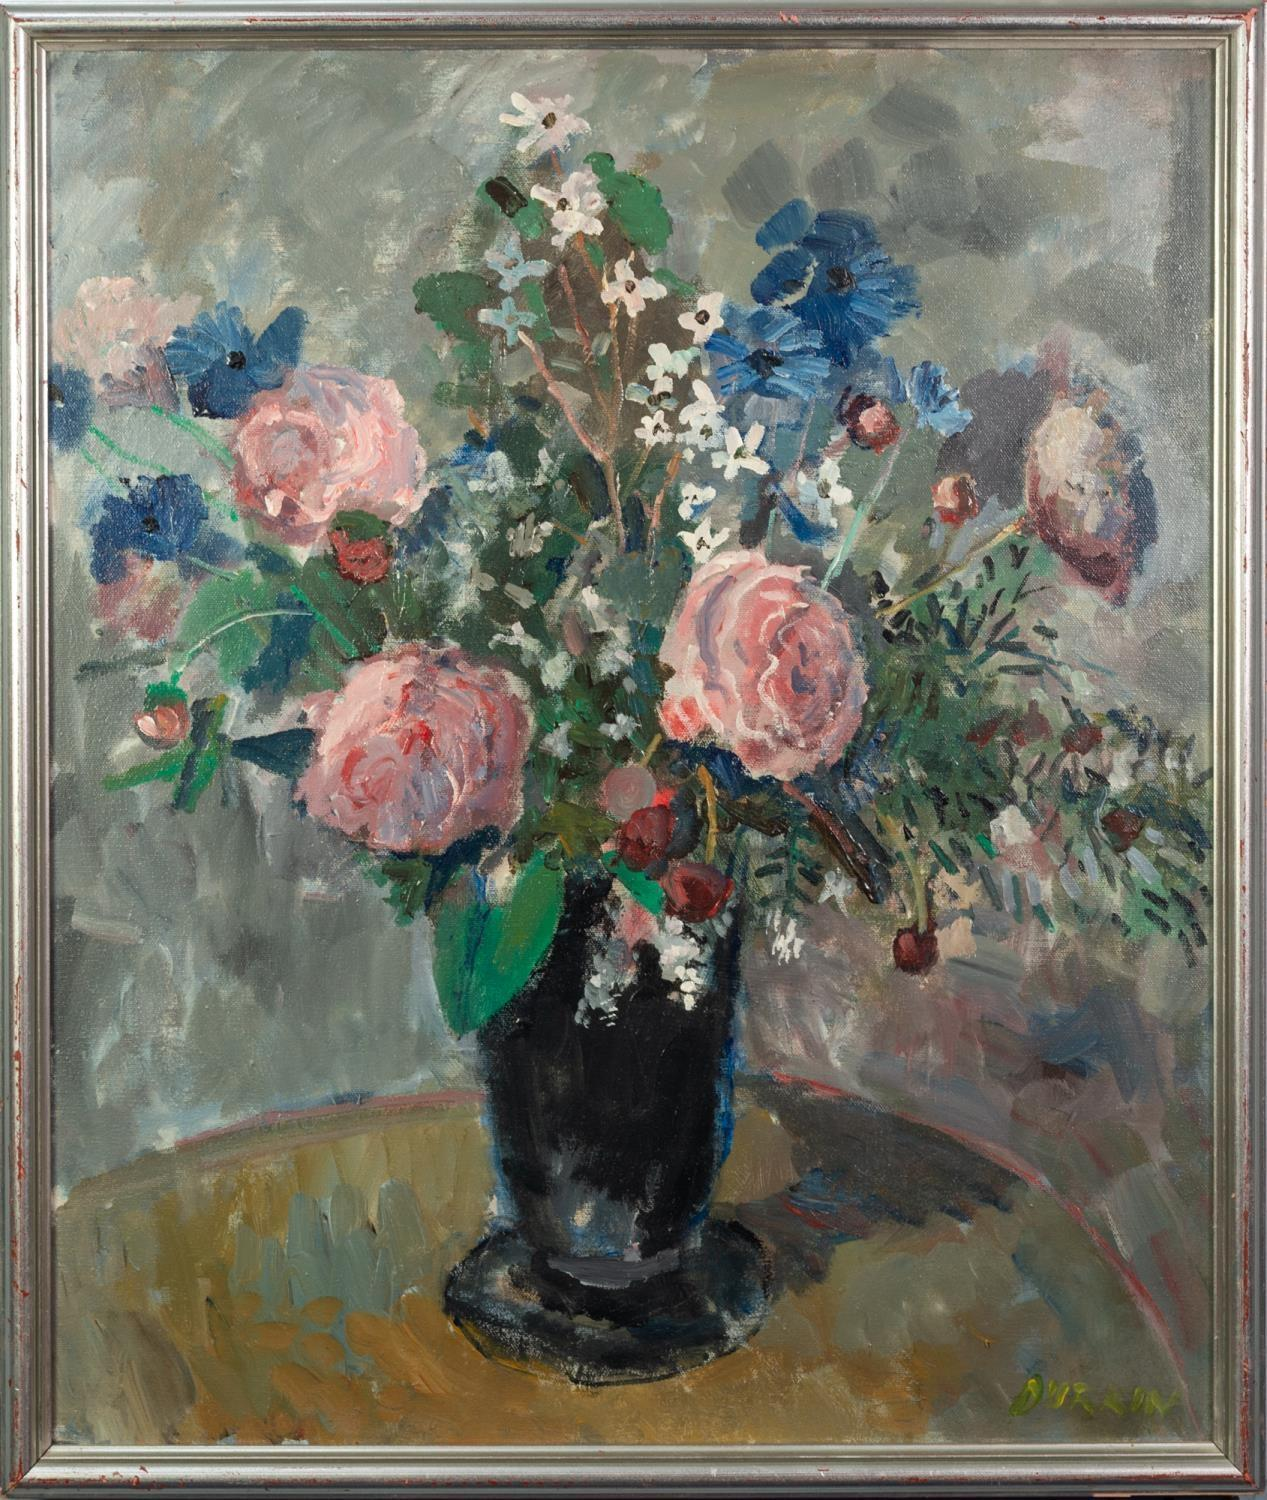 THOMAS DURKIN (1928-1990) OIL ON CANVAS Still Life-vase of flowers Signed 24? x 20? (61cm x 50. - Image 2 of 2